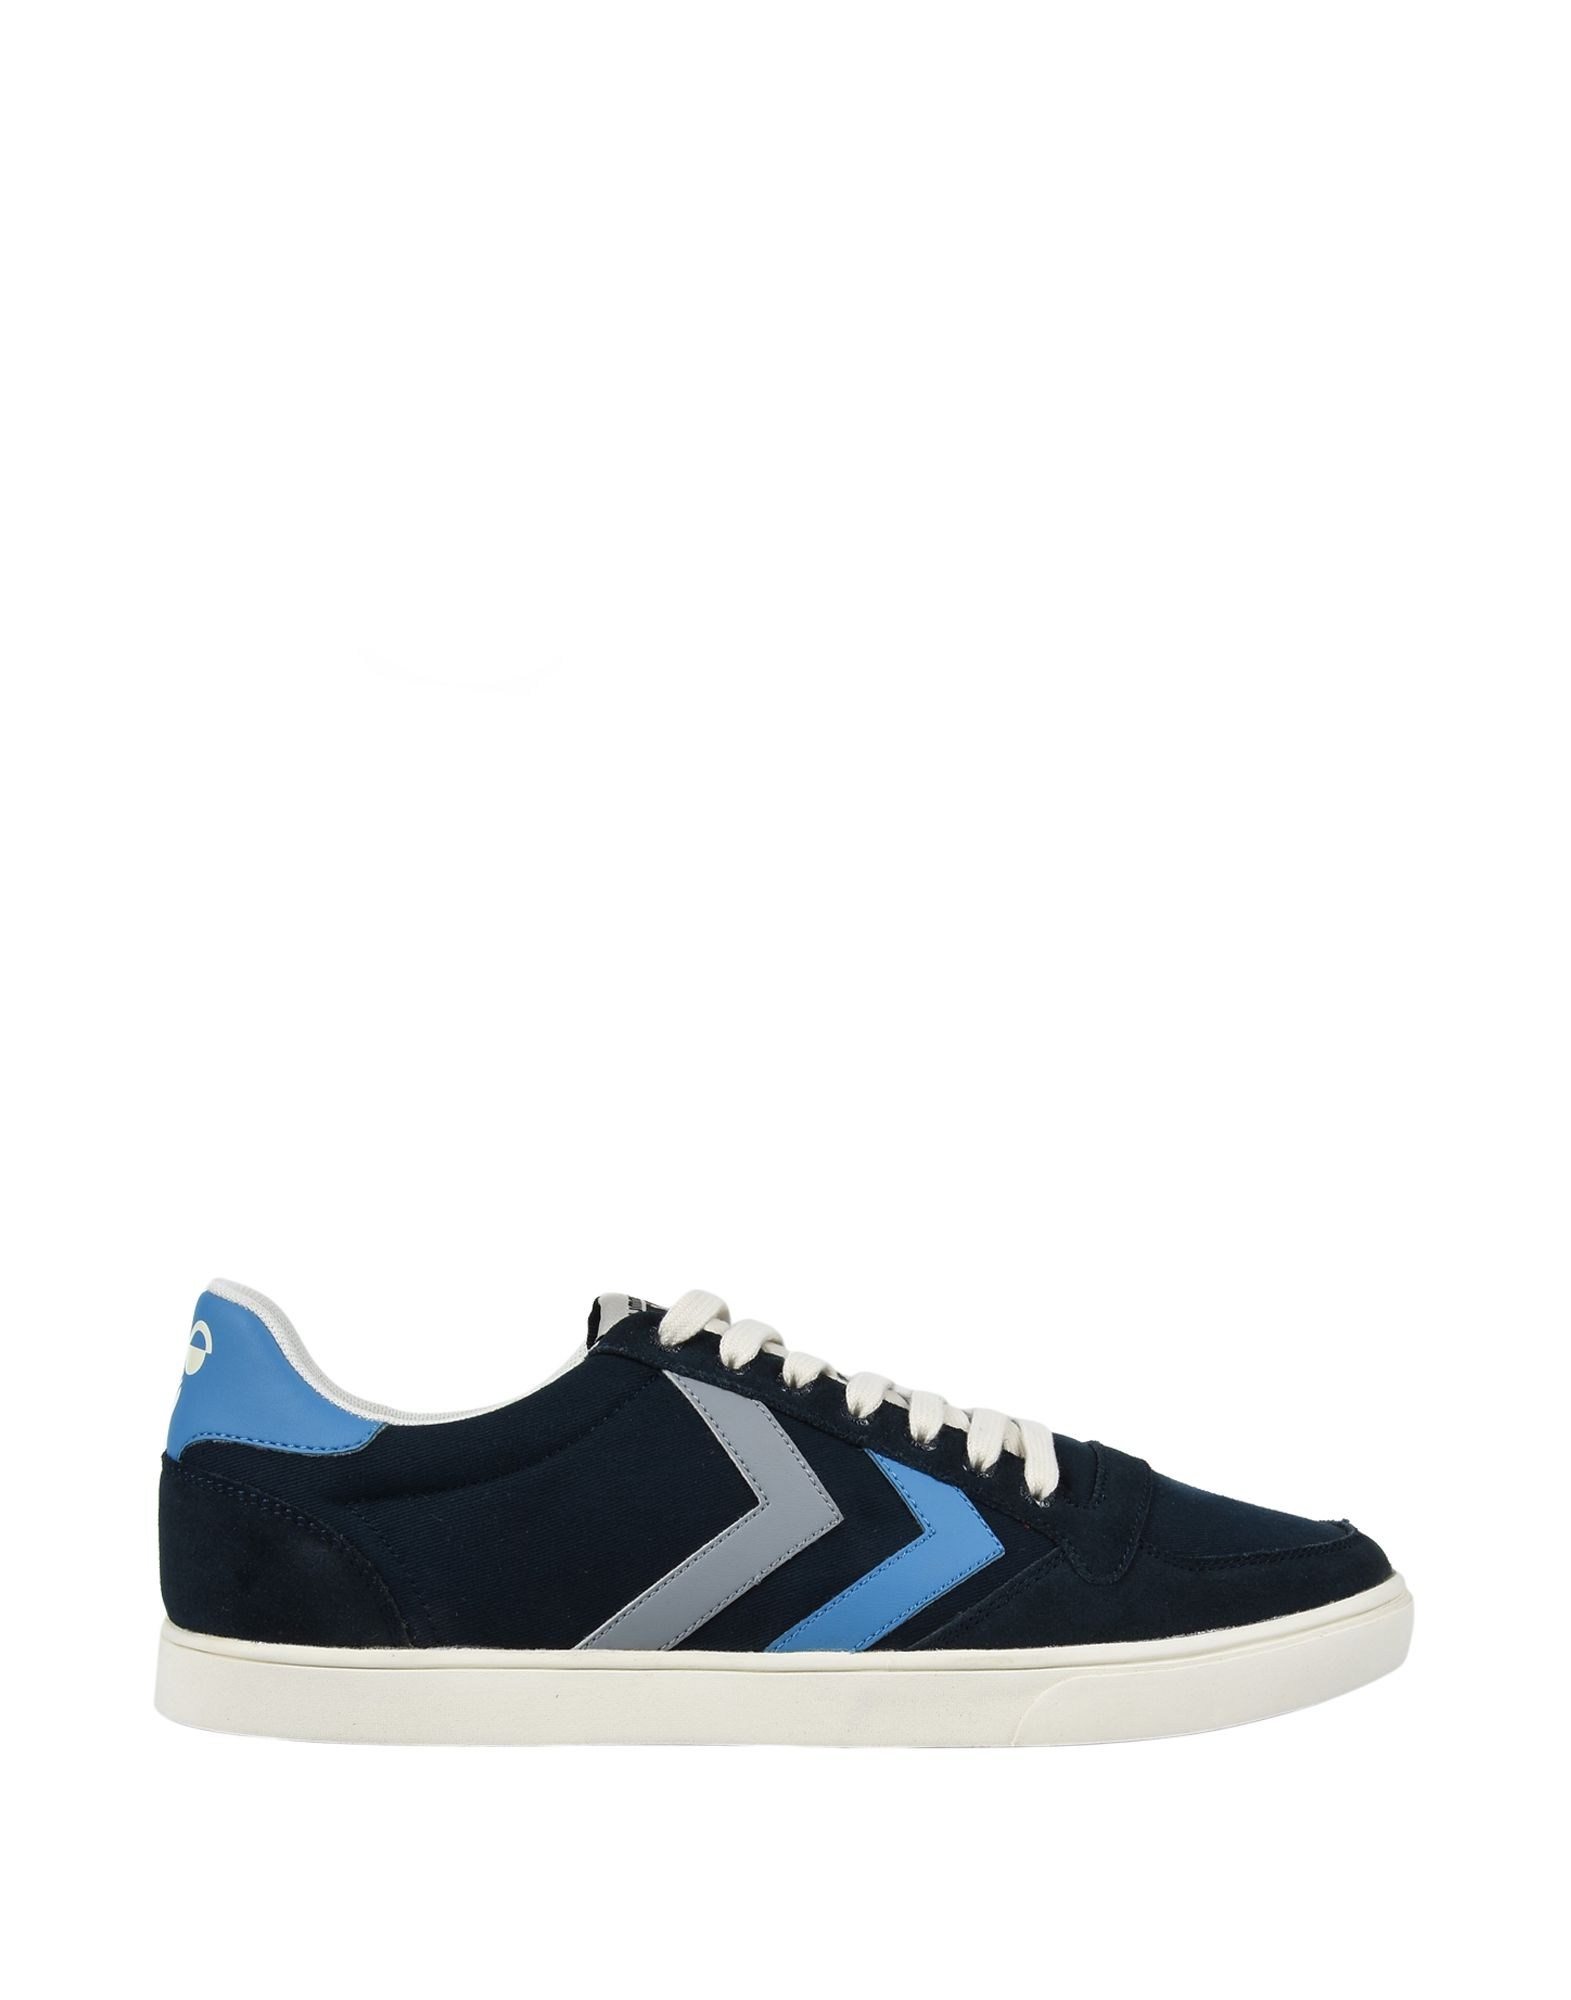 Sneakers Hummel Sl. Stadil Duo Canvas Low - Uomo - 11221190PT